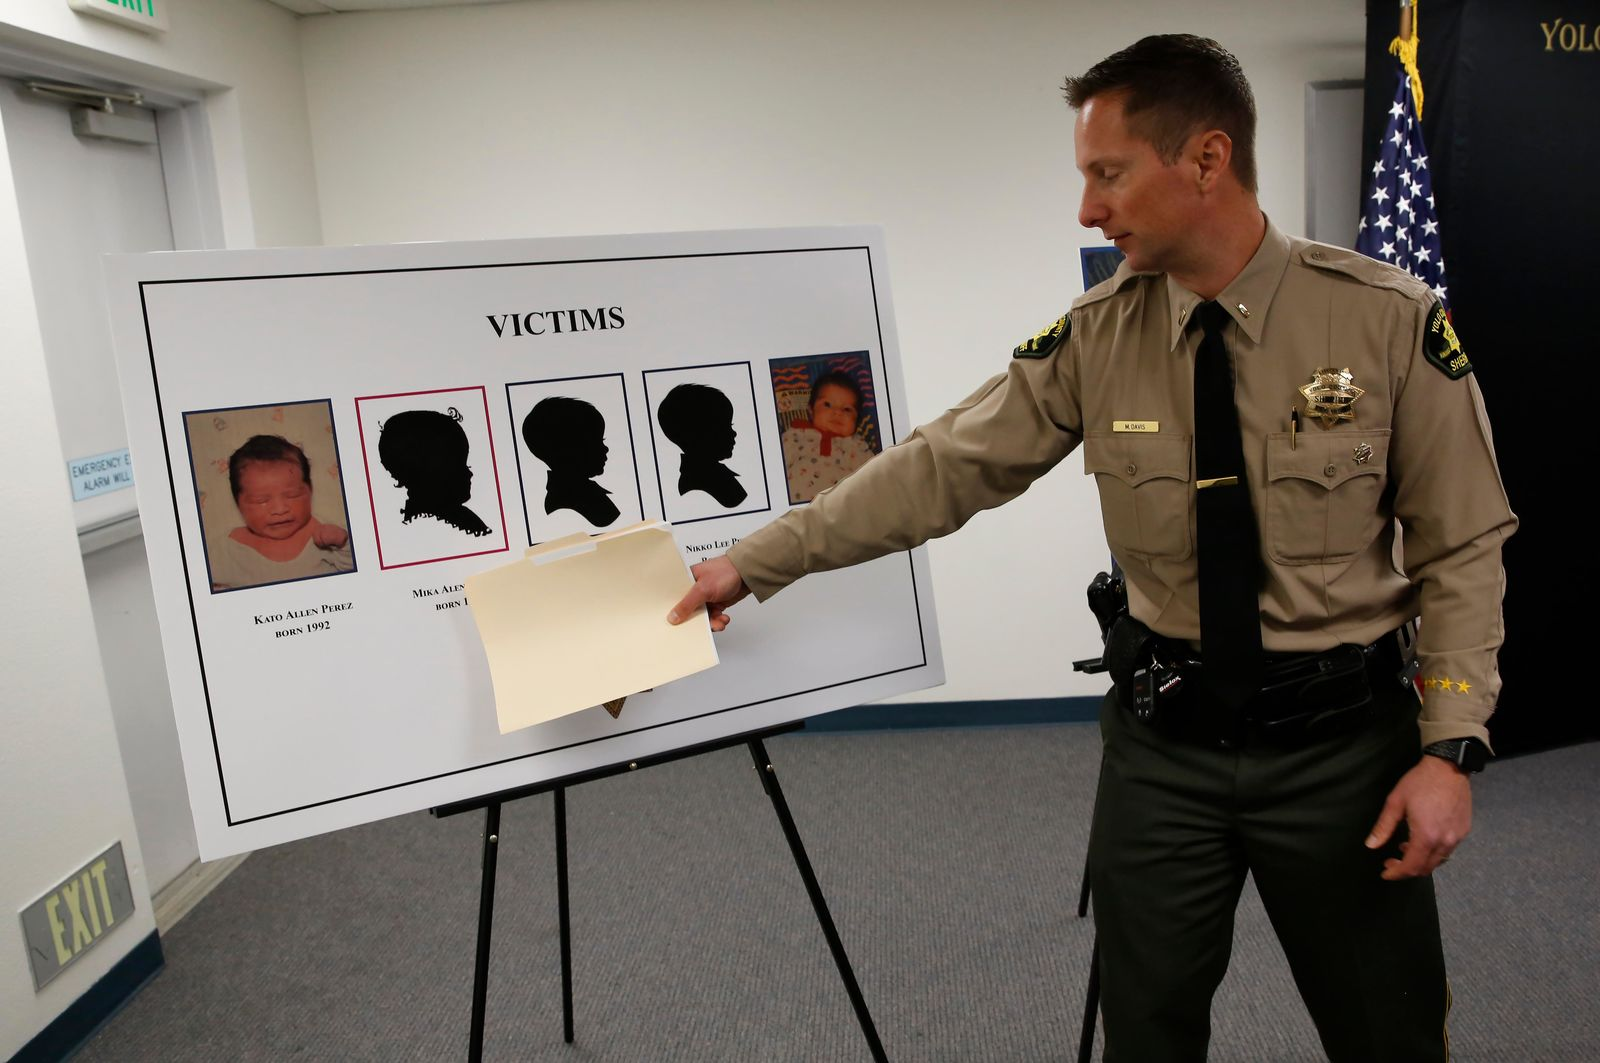 Lieutenant Matthew Davis of the Yolo County Sheriff's Department gestures to the images of five infants believed to be killed by their father, during a news conference in Woodland, Calif., Monday, Jan. 27, 2020. Paul Perez, 57, has been arrested in the decades-old killings of five of his infant children, a case the sheriff said had haunted his agency for years, the Yolo County Sheriff's Office said Monday, Jan. 27, 2020. (AP Photo/Rich Pedroncelli)